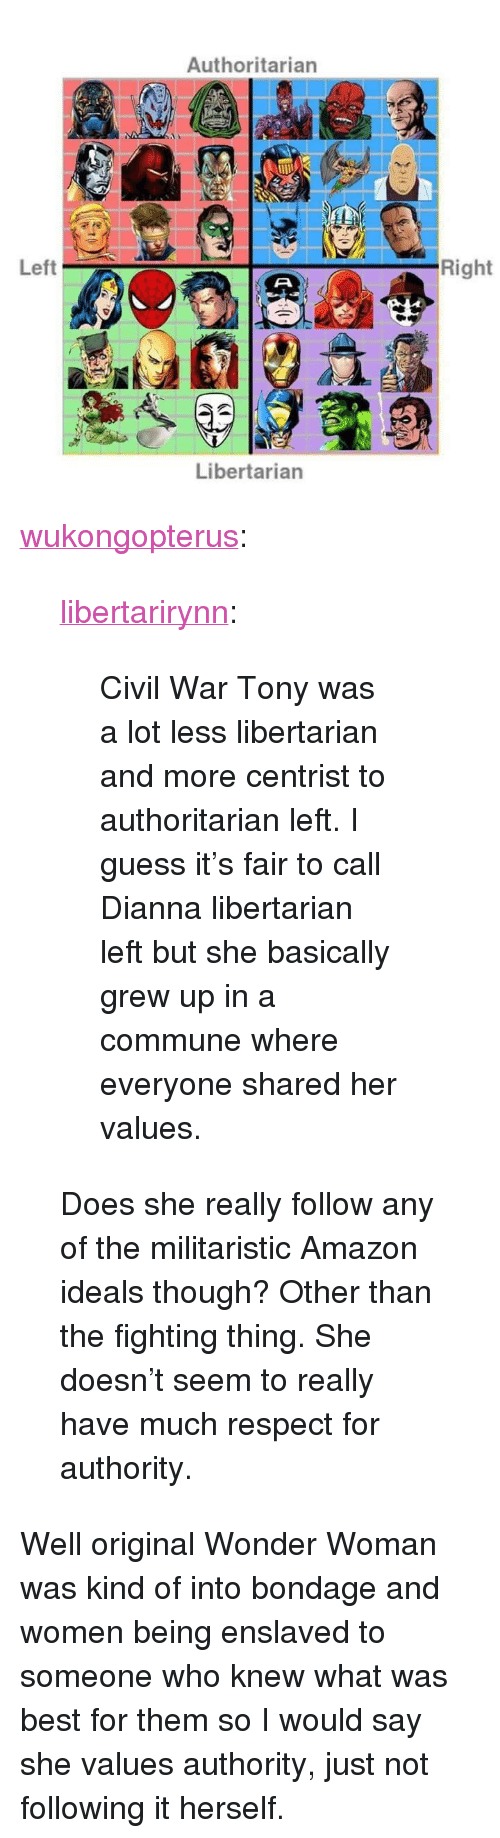 "Amazon, Respect, and Tumblr: Authoritarian  Left  Right  Libertarian <p><a href=""http://wukongopterus.tumblr.com/post/167791668842/libertarirynn-civil-war-tony-was-a-lot-less"" class=""tumblr_blog"">wukongopterus</a>:</p>  <blockquote><p><a href=""https://libertarirynn.tumblr.com/post/167790975239/civil-war-tony-was-a-lot-less-libertarian-and-more"" class=""tumblr_blog"">libertarirynn</a>:</p>  <blockquote><p>Civil War Tony was a lot less libertarian and more centrist to authoritarian left. I guess it's fair to call Dianna libertarian left but she basically grew up in a commune where everyone shared her values.</p></blockquote>  <p>Does she really follow any of the militaristic Amazon ideals though? Other than the fighting thing. She doesn't seem to really have much respect for authority. </p></blockquote>  <p>Well original Wonder Woman was kind of into bondage and women being enslaved to someone who knew what was best for them so I would say she values authority, just not following it herself.</p>"